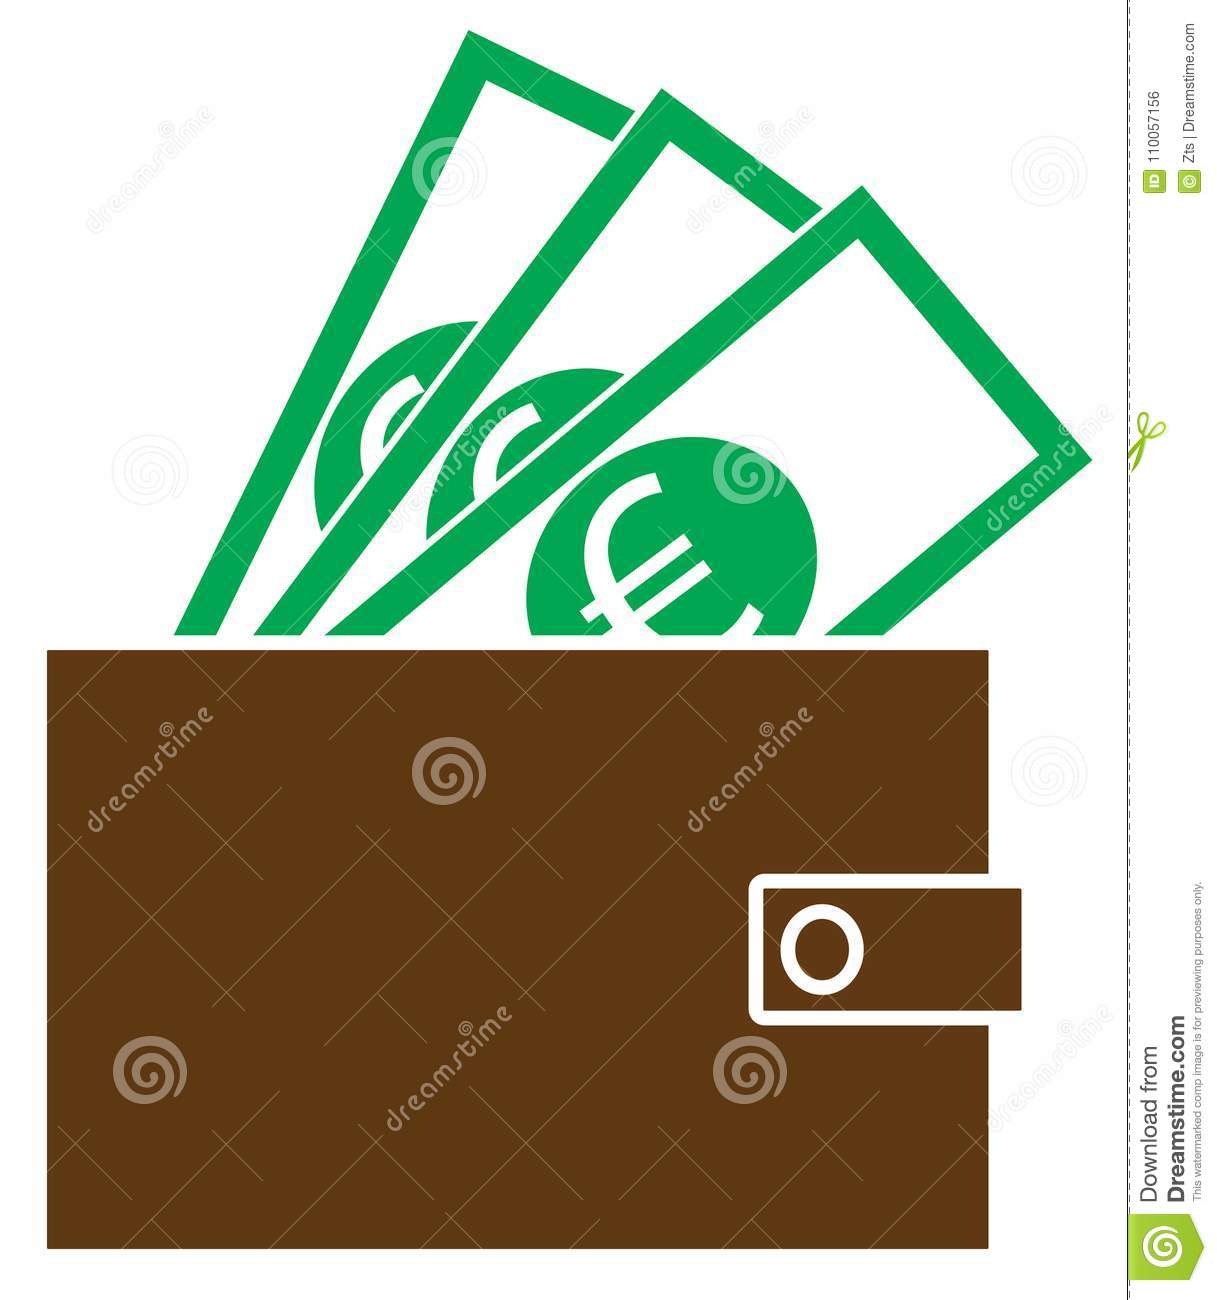 Euro currency icon or logo on notes popping out of a wallet stock euro currency icon or logo on notes popping out of a wallet biocorpaavc Images